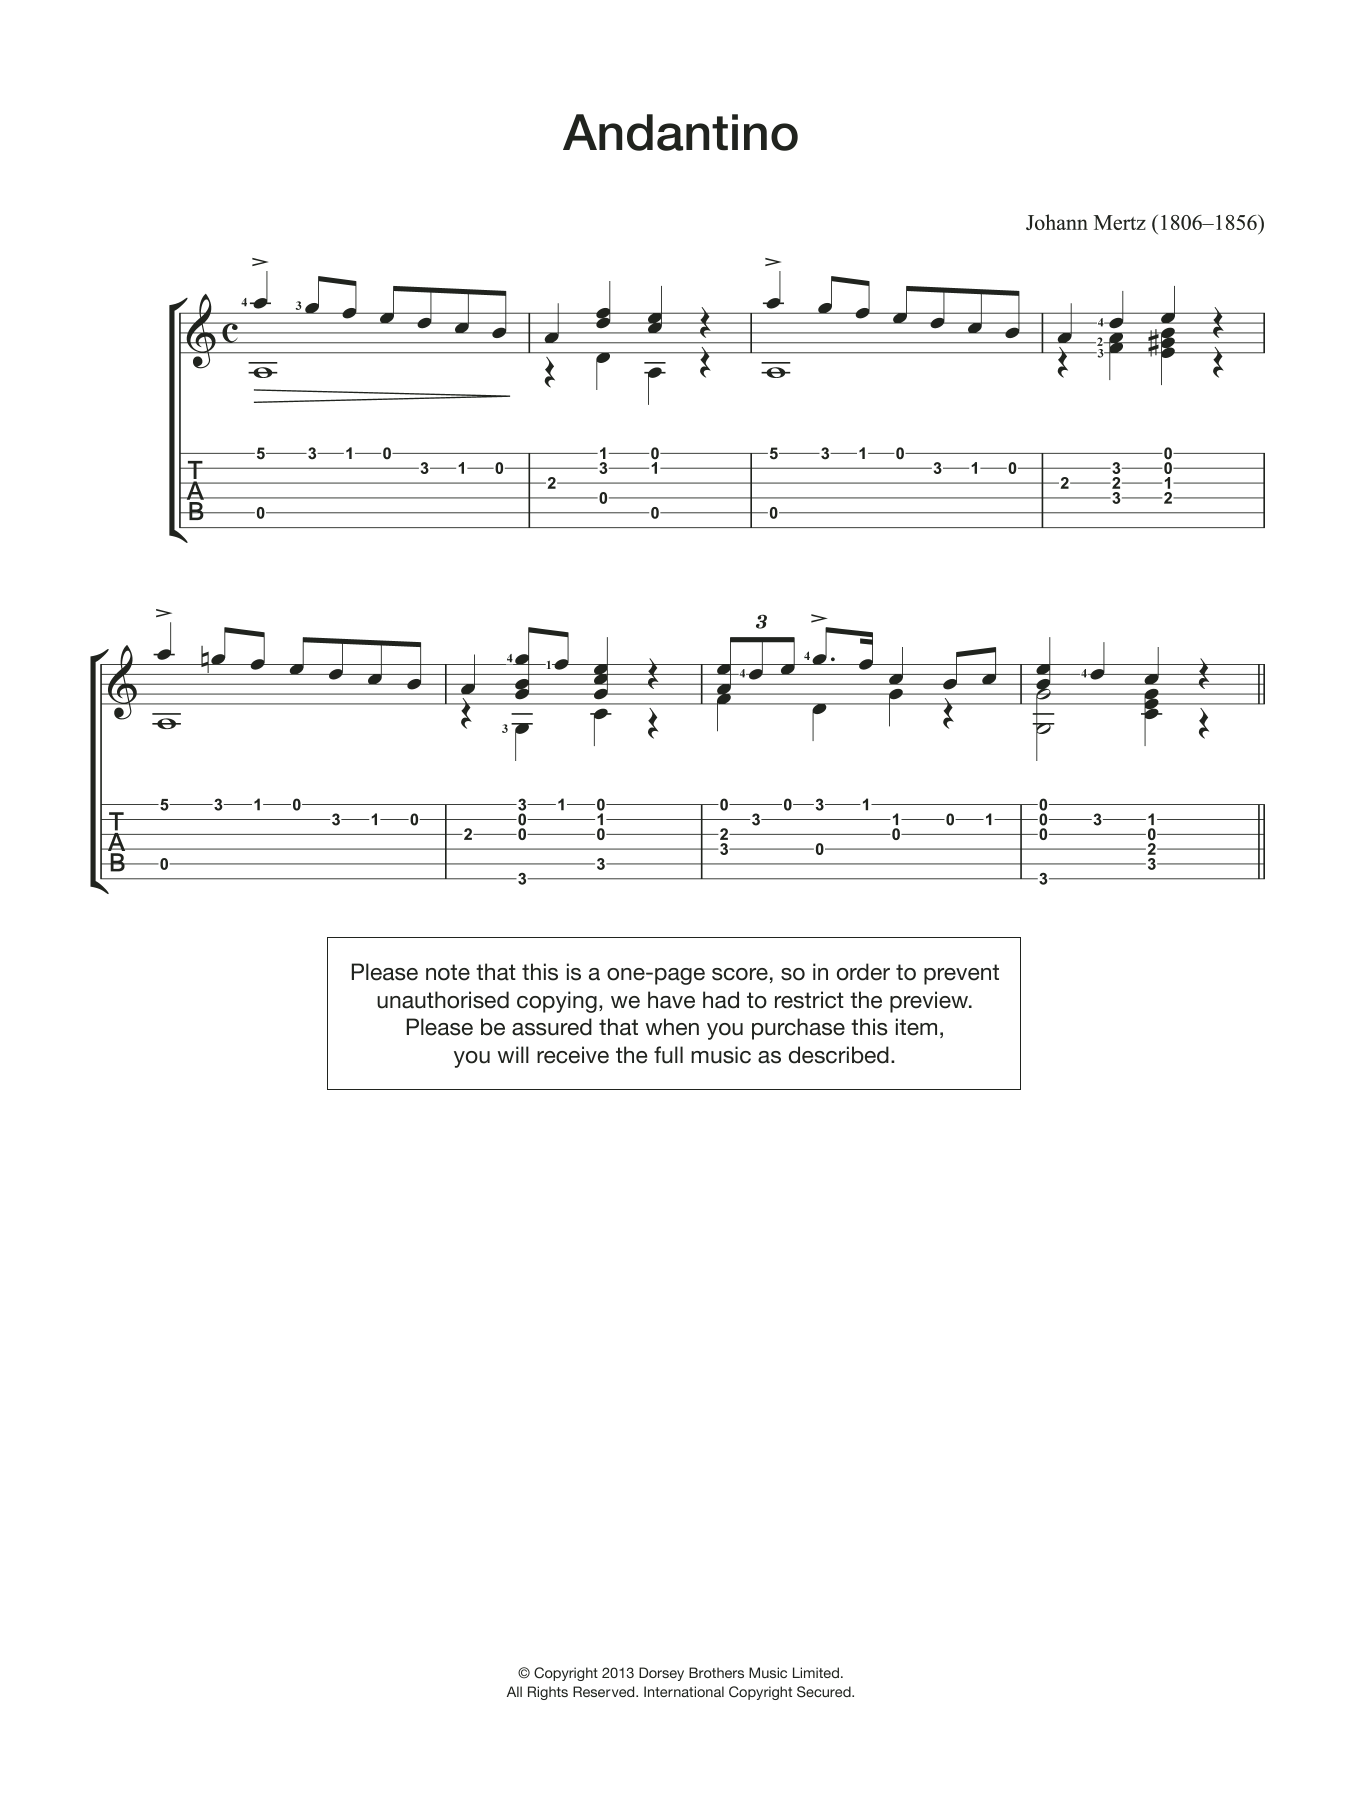 Andantino Sheet Music